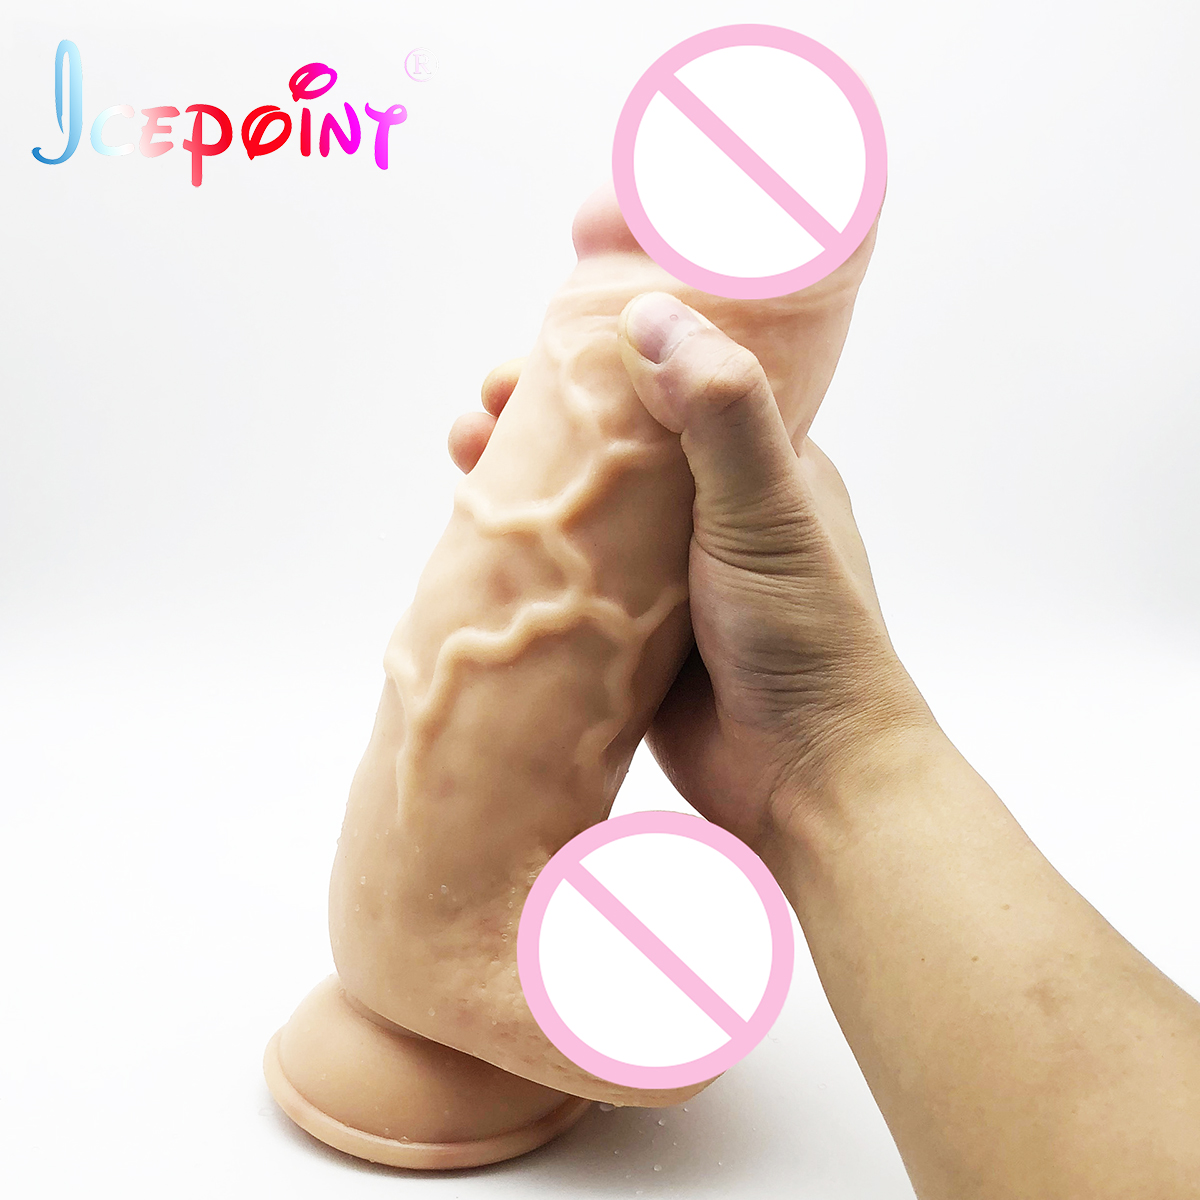 ICEPOINT 29.5*7cm Giant Huge Dildo Super Big Dick With Suction Cup Anal Butt Plug Large Dong Realistic Penis Sex Toys For Woman